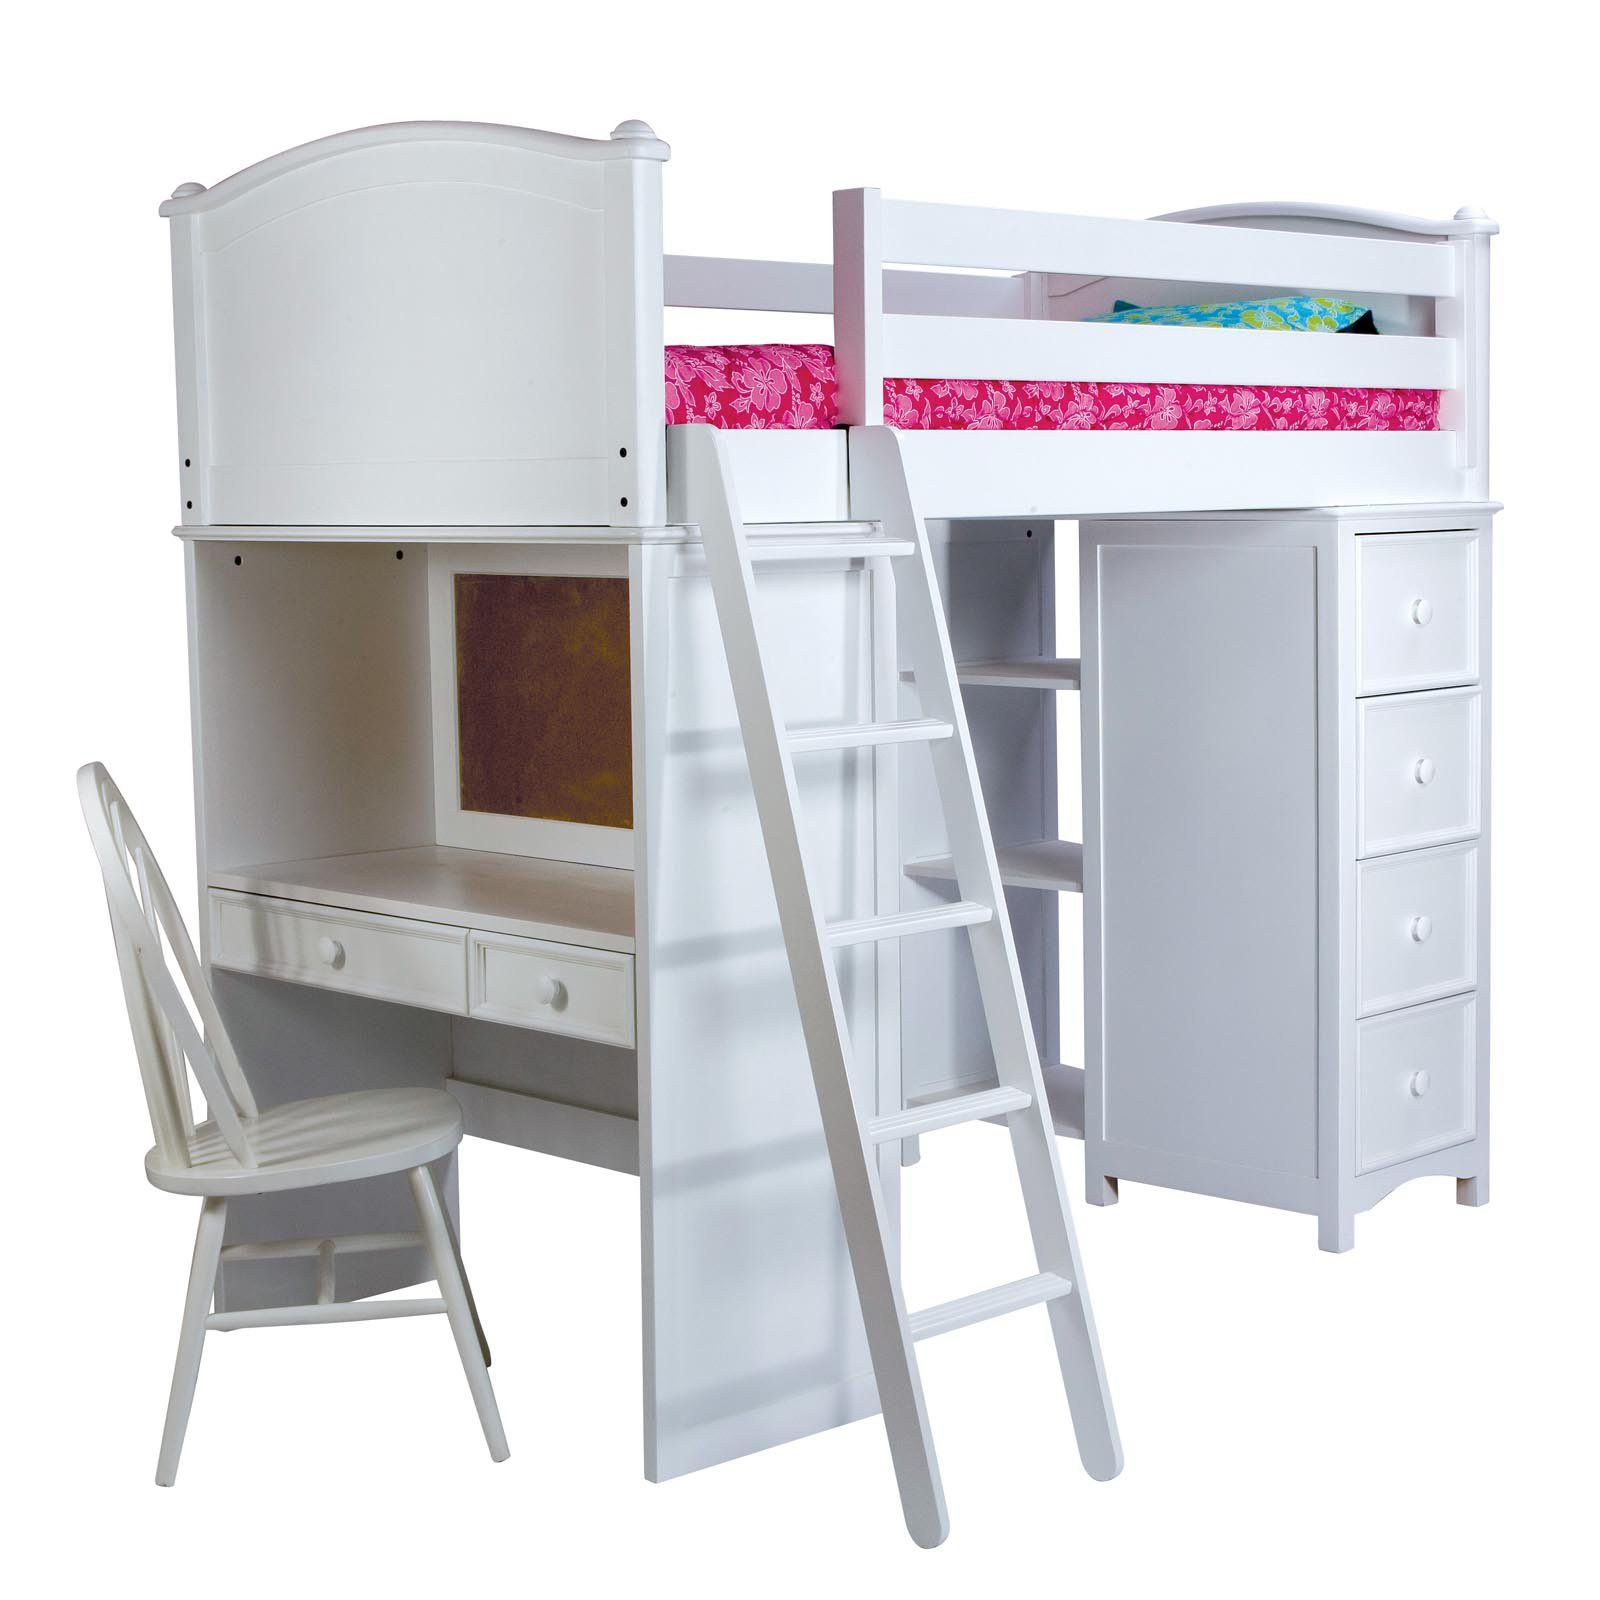 Cooley Sleep Study And Storage Twin Loft Www Hayneedle Com Beds For Teens Bed Plans White